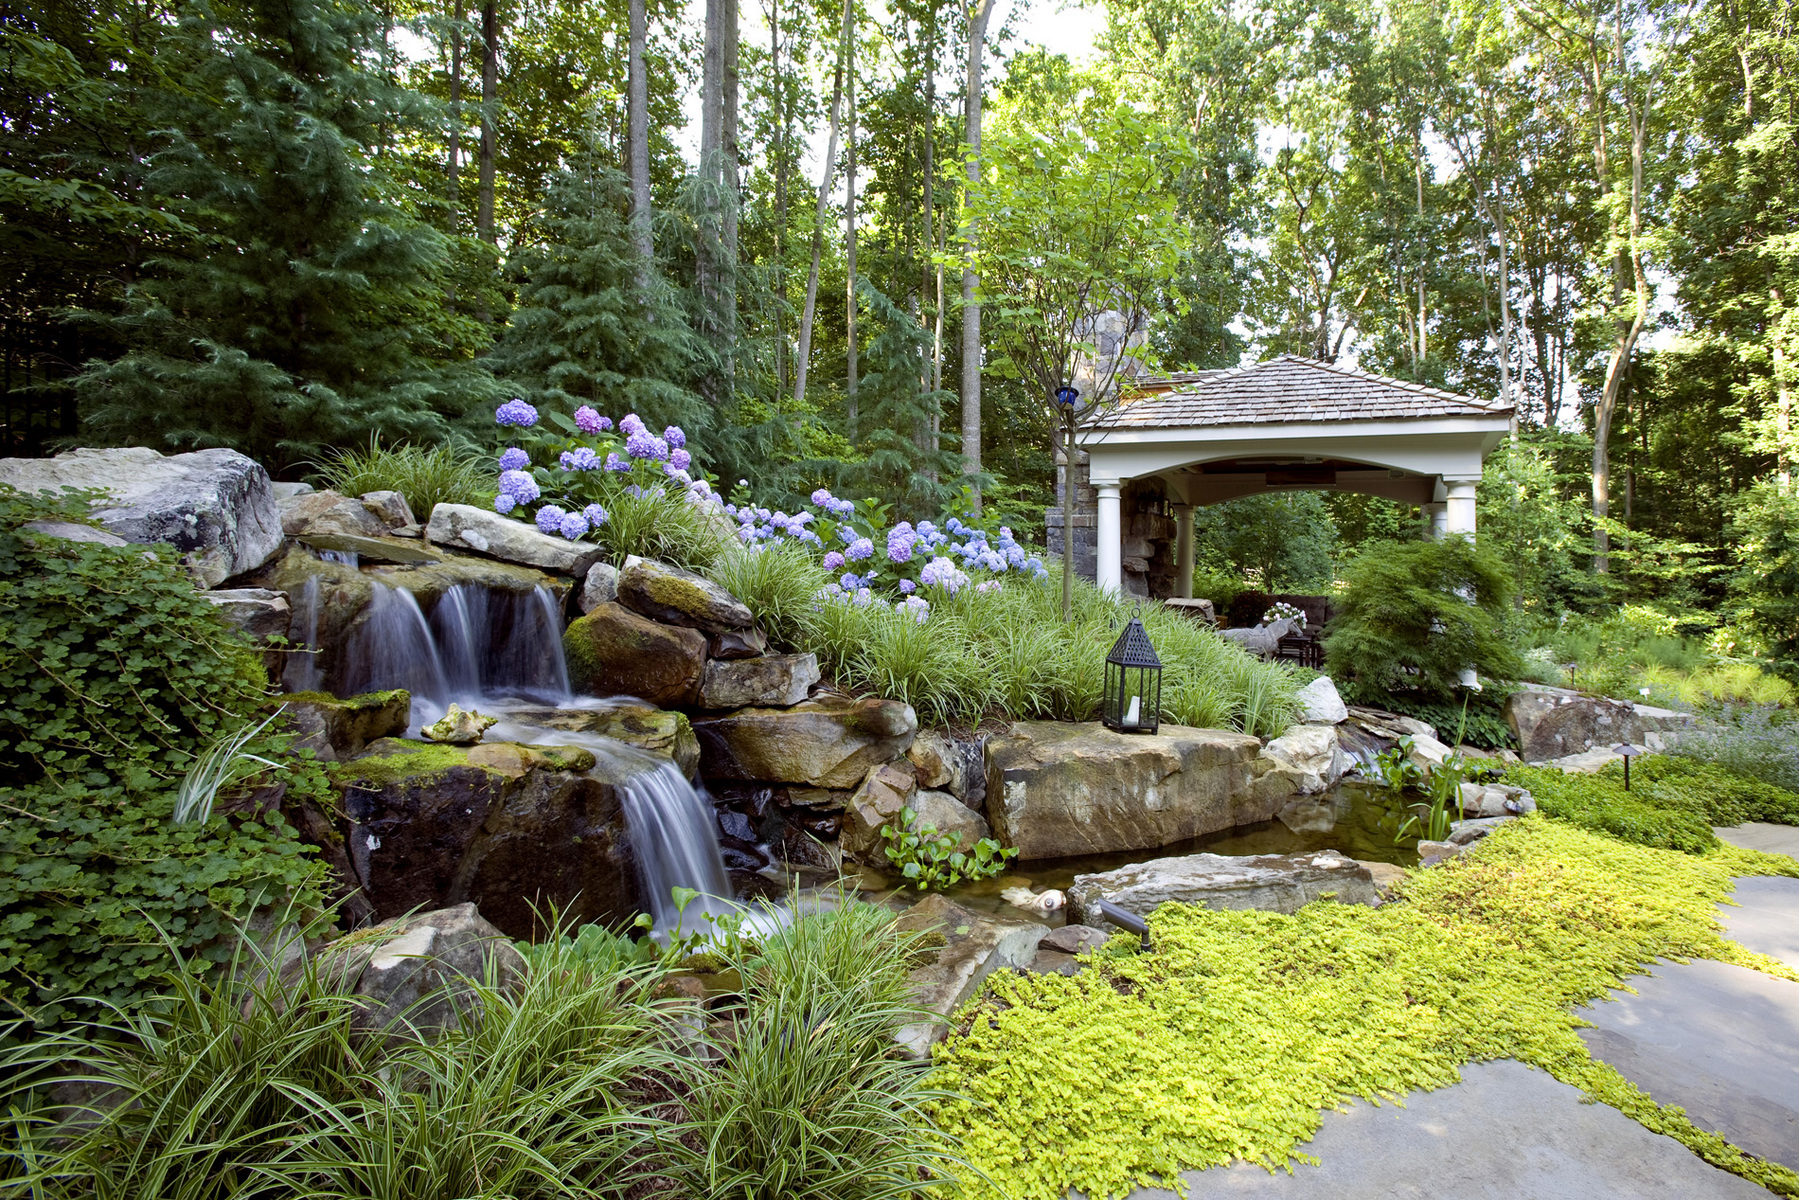 Gardens greg hadley photography architectural photography for Garden pond grills